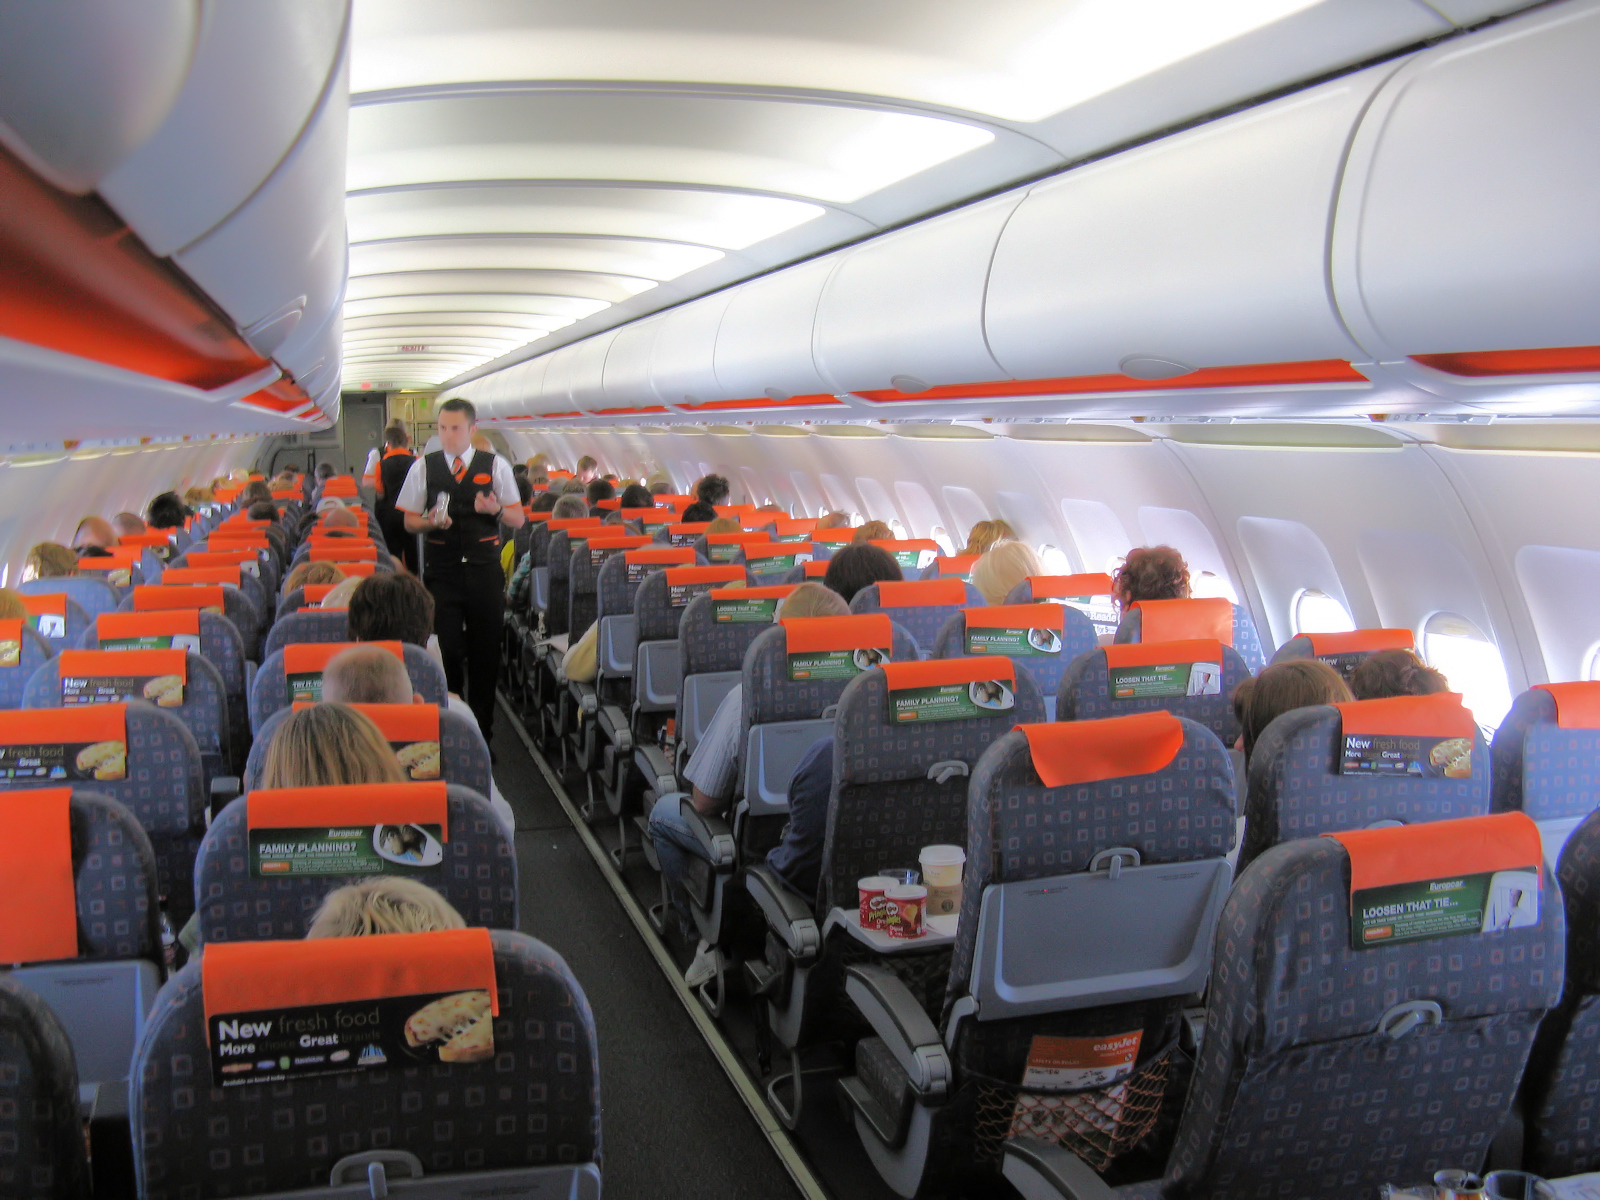 File:Easyjet a319 interior in flight arp.jpg - Wikimedia Commons